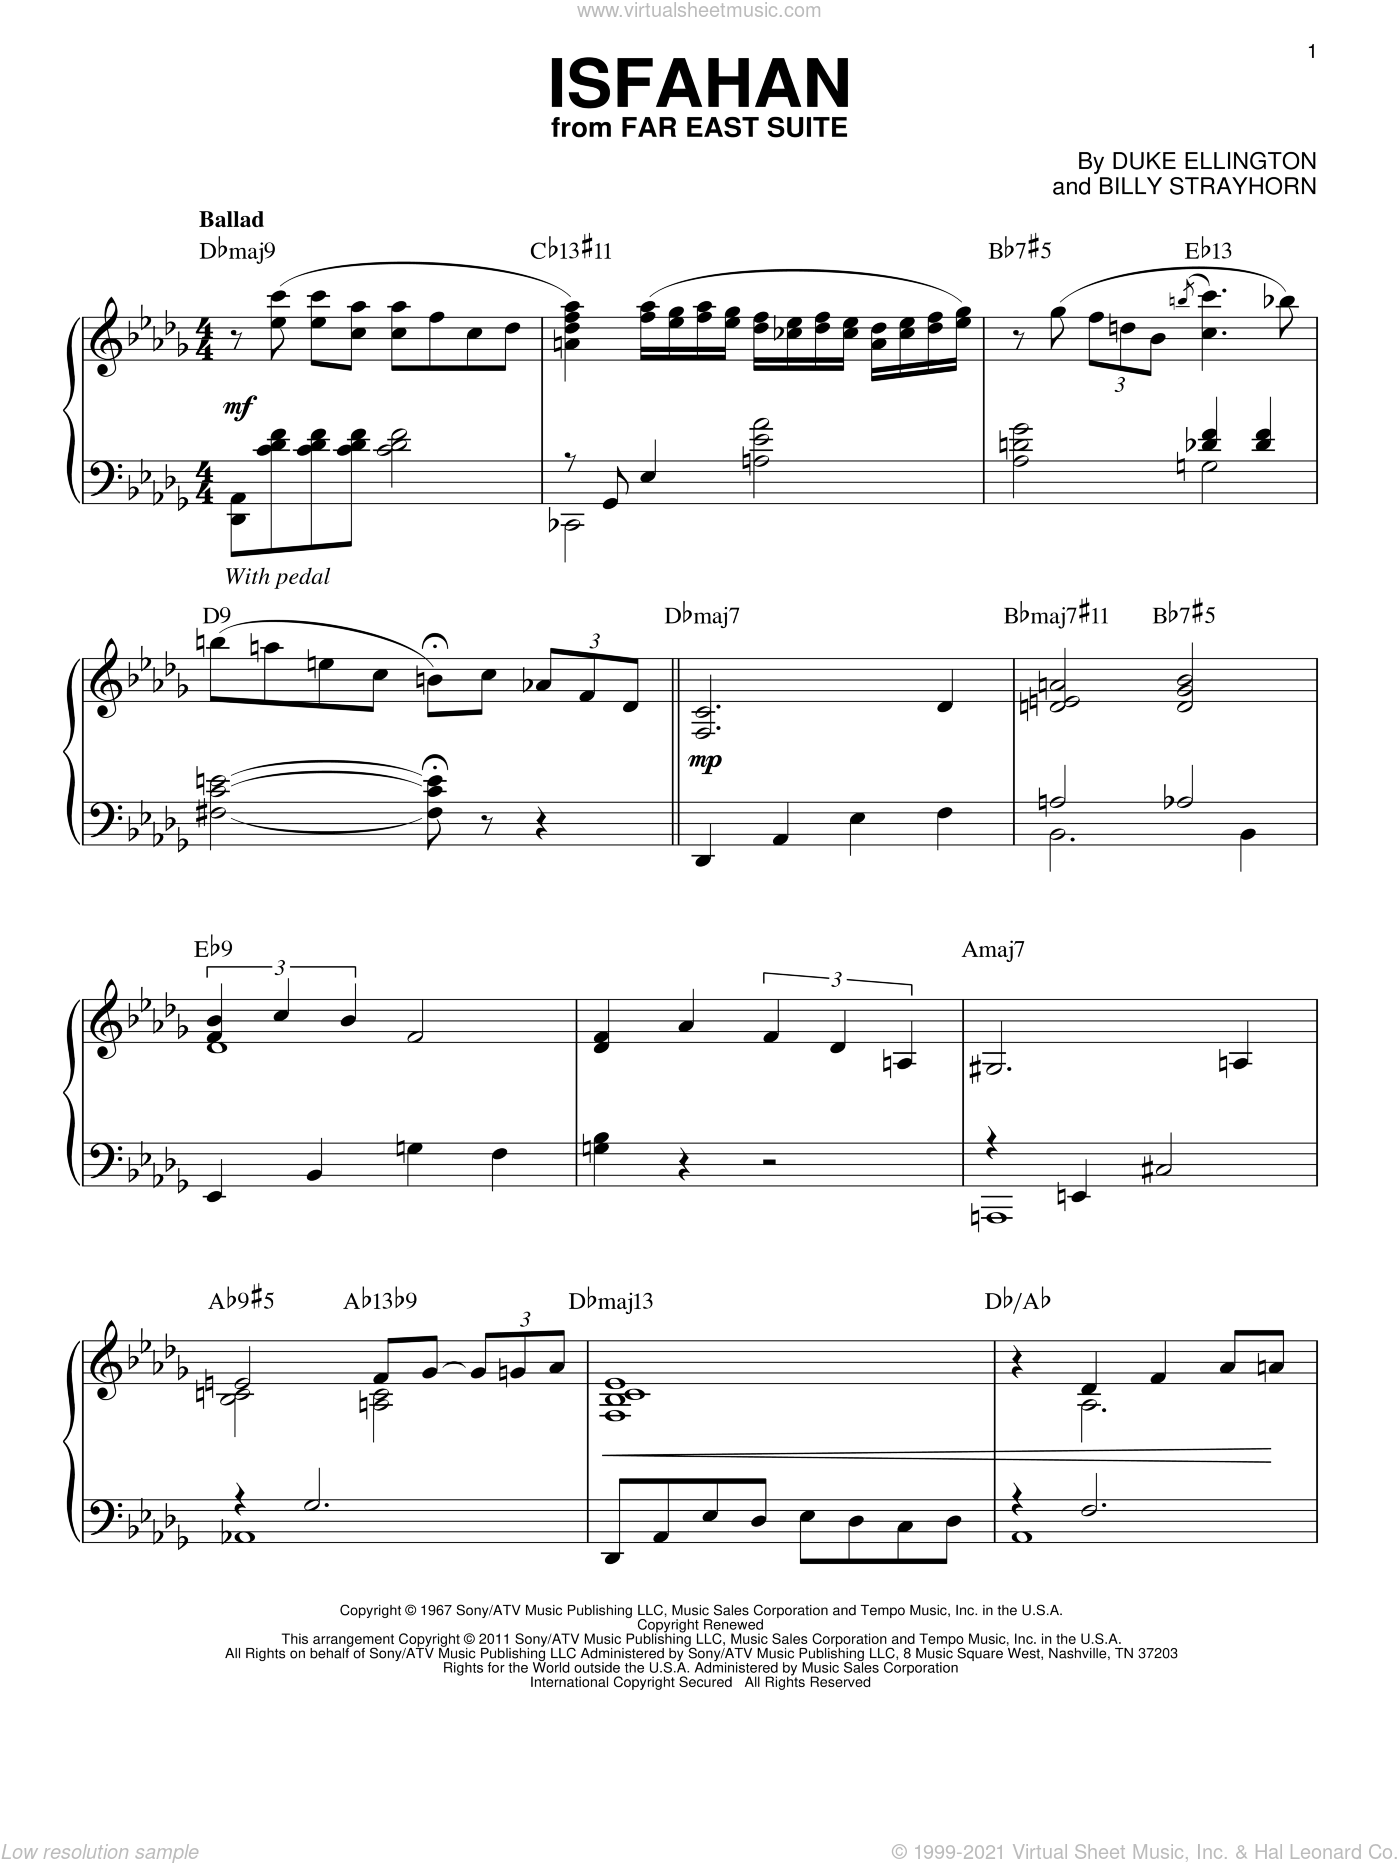 Isfahan sheet music for piano solo by Duke Ellington and Billy Strayhorn, intermediate skill level